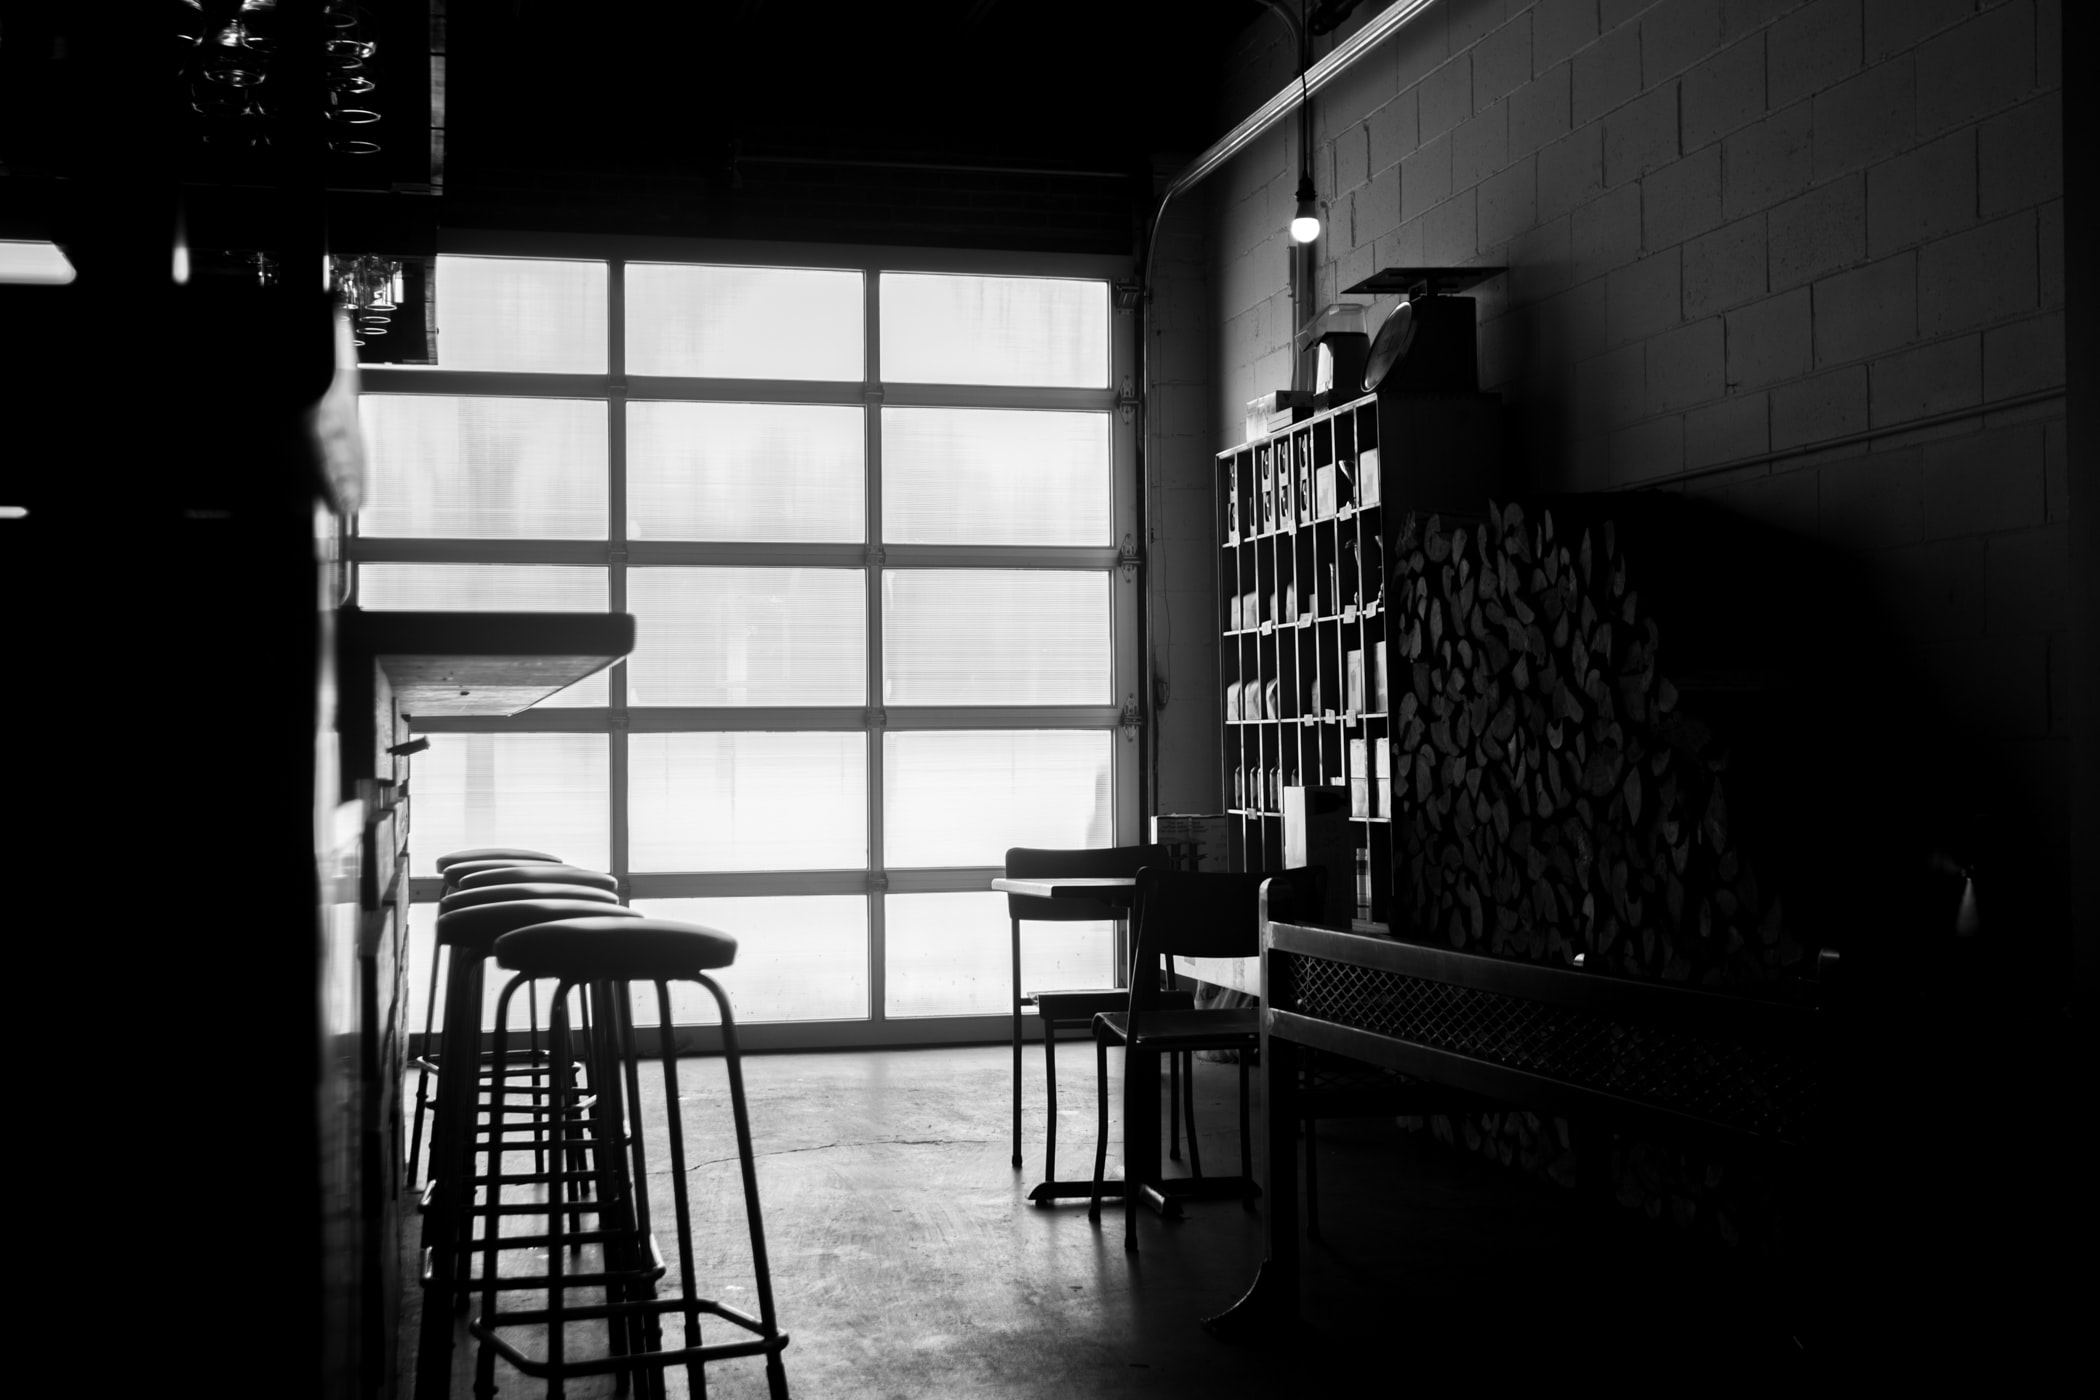 Black and white shot of restaurant interior with stools, counter and big wall window